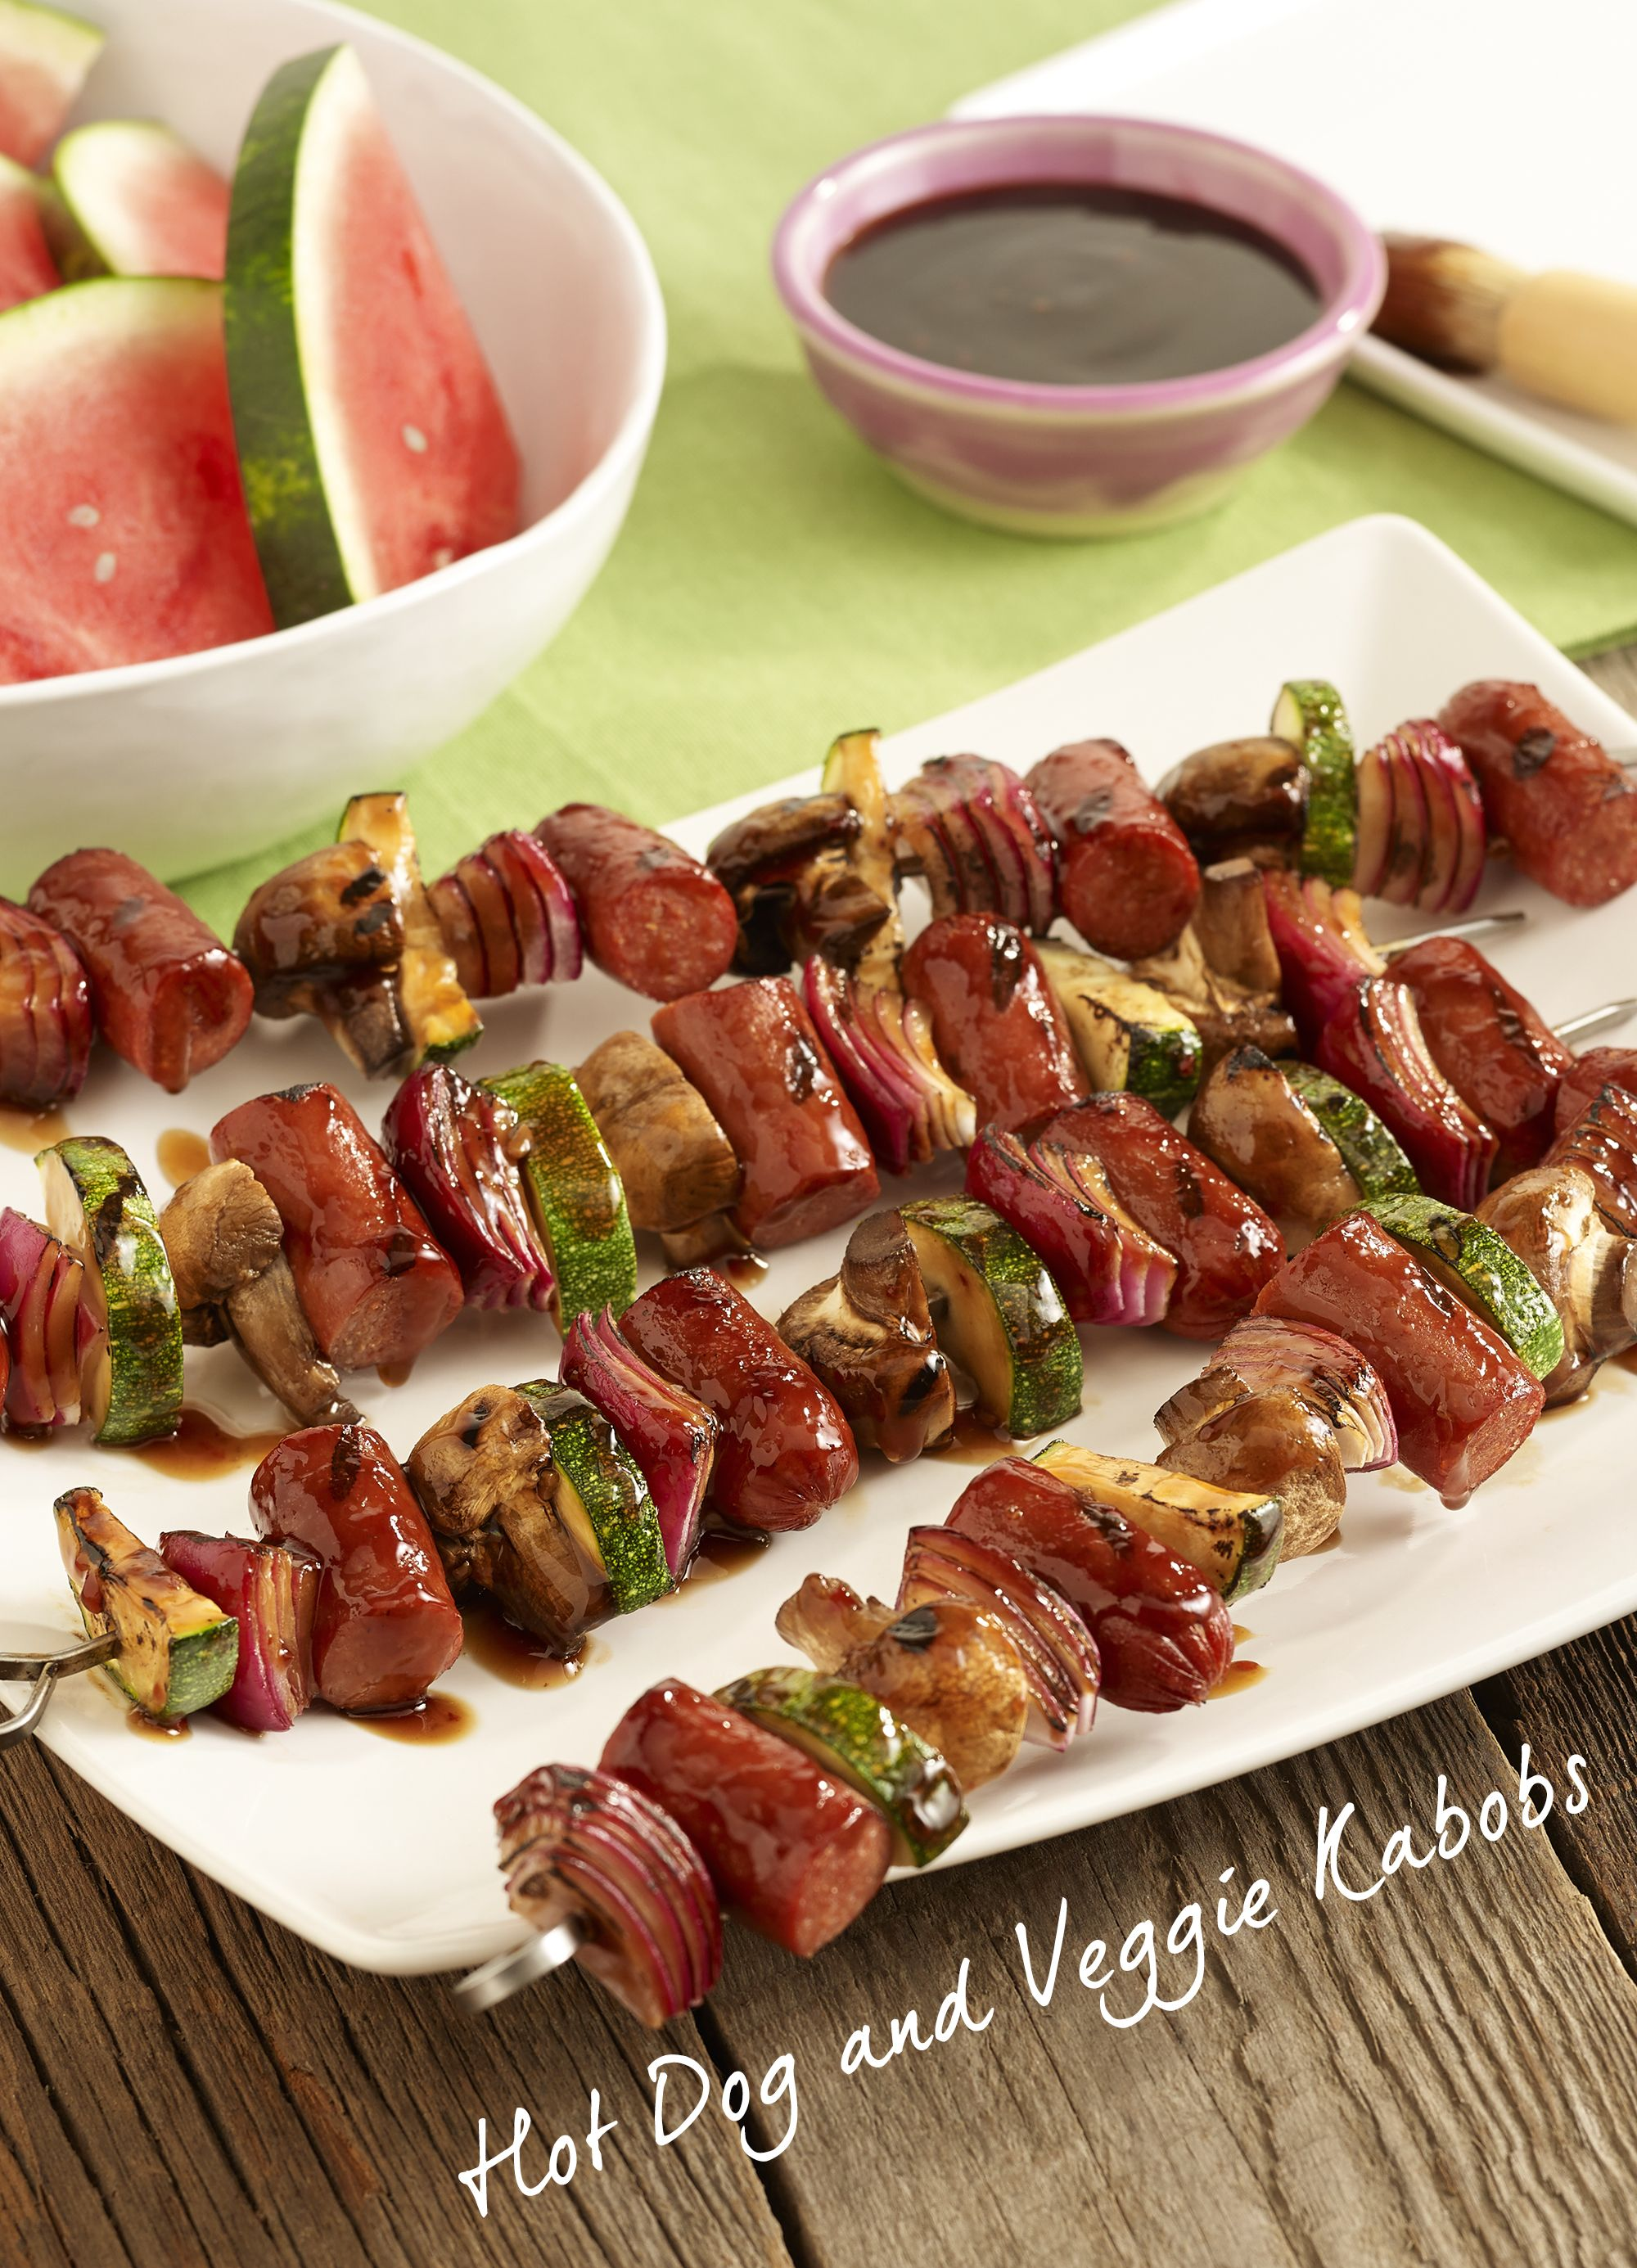 Try a gluten free dish this Father's Day with our Hot Dog and Veggie Kabobs. You won't miss the bun with this dish!